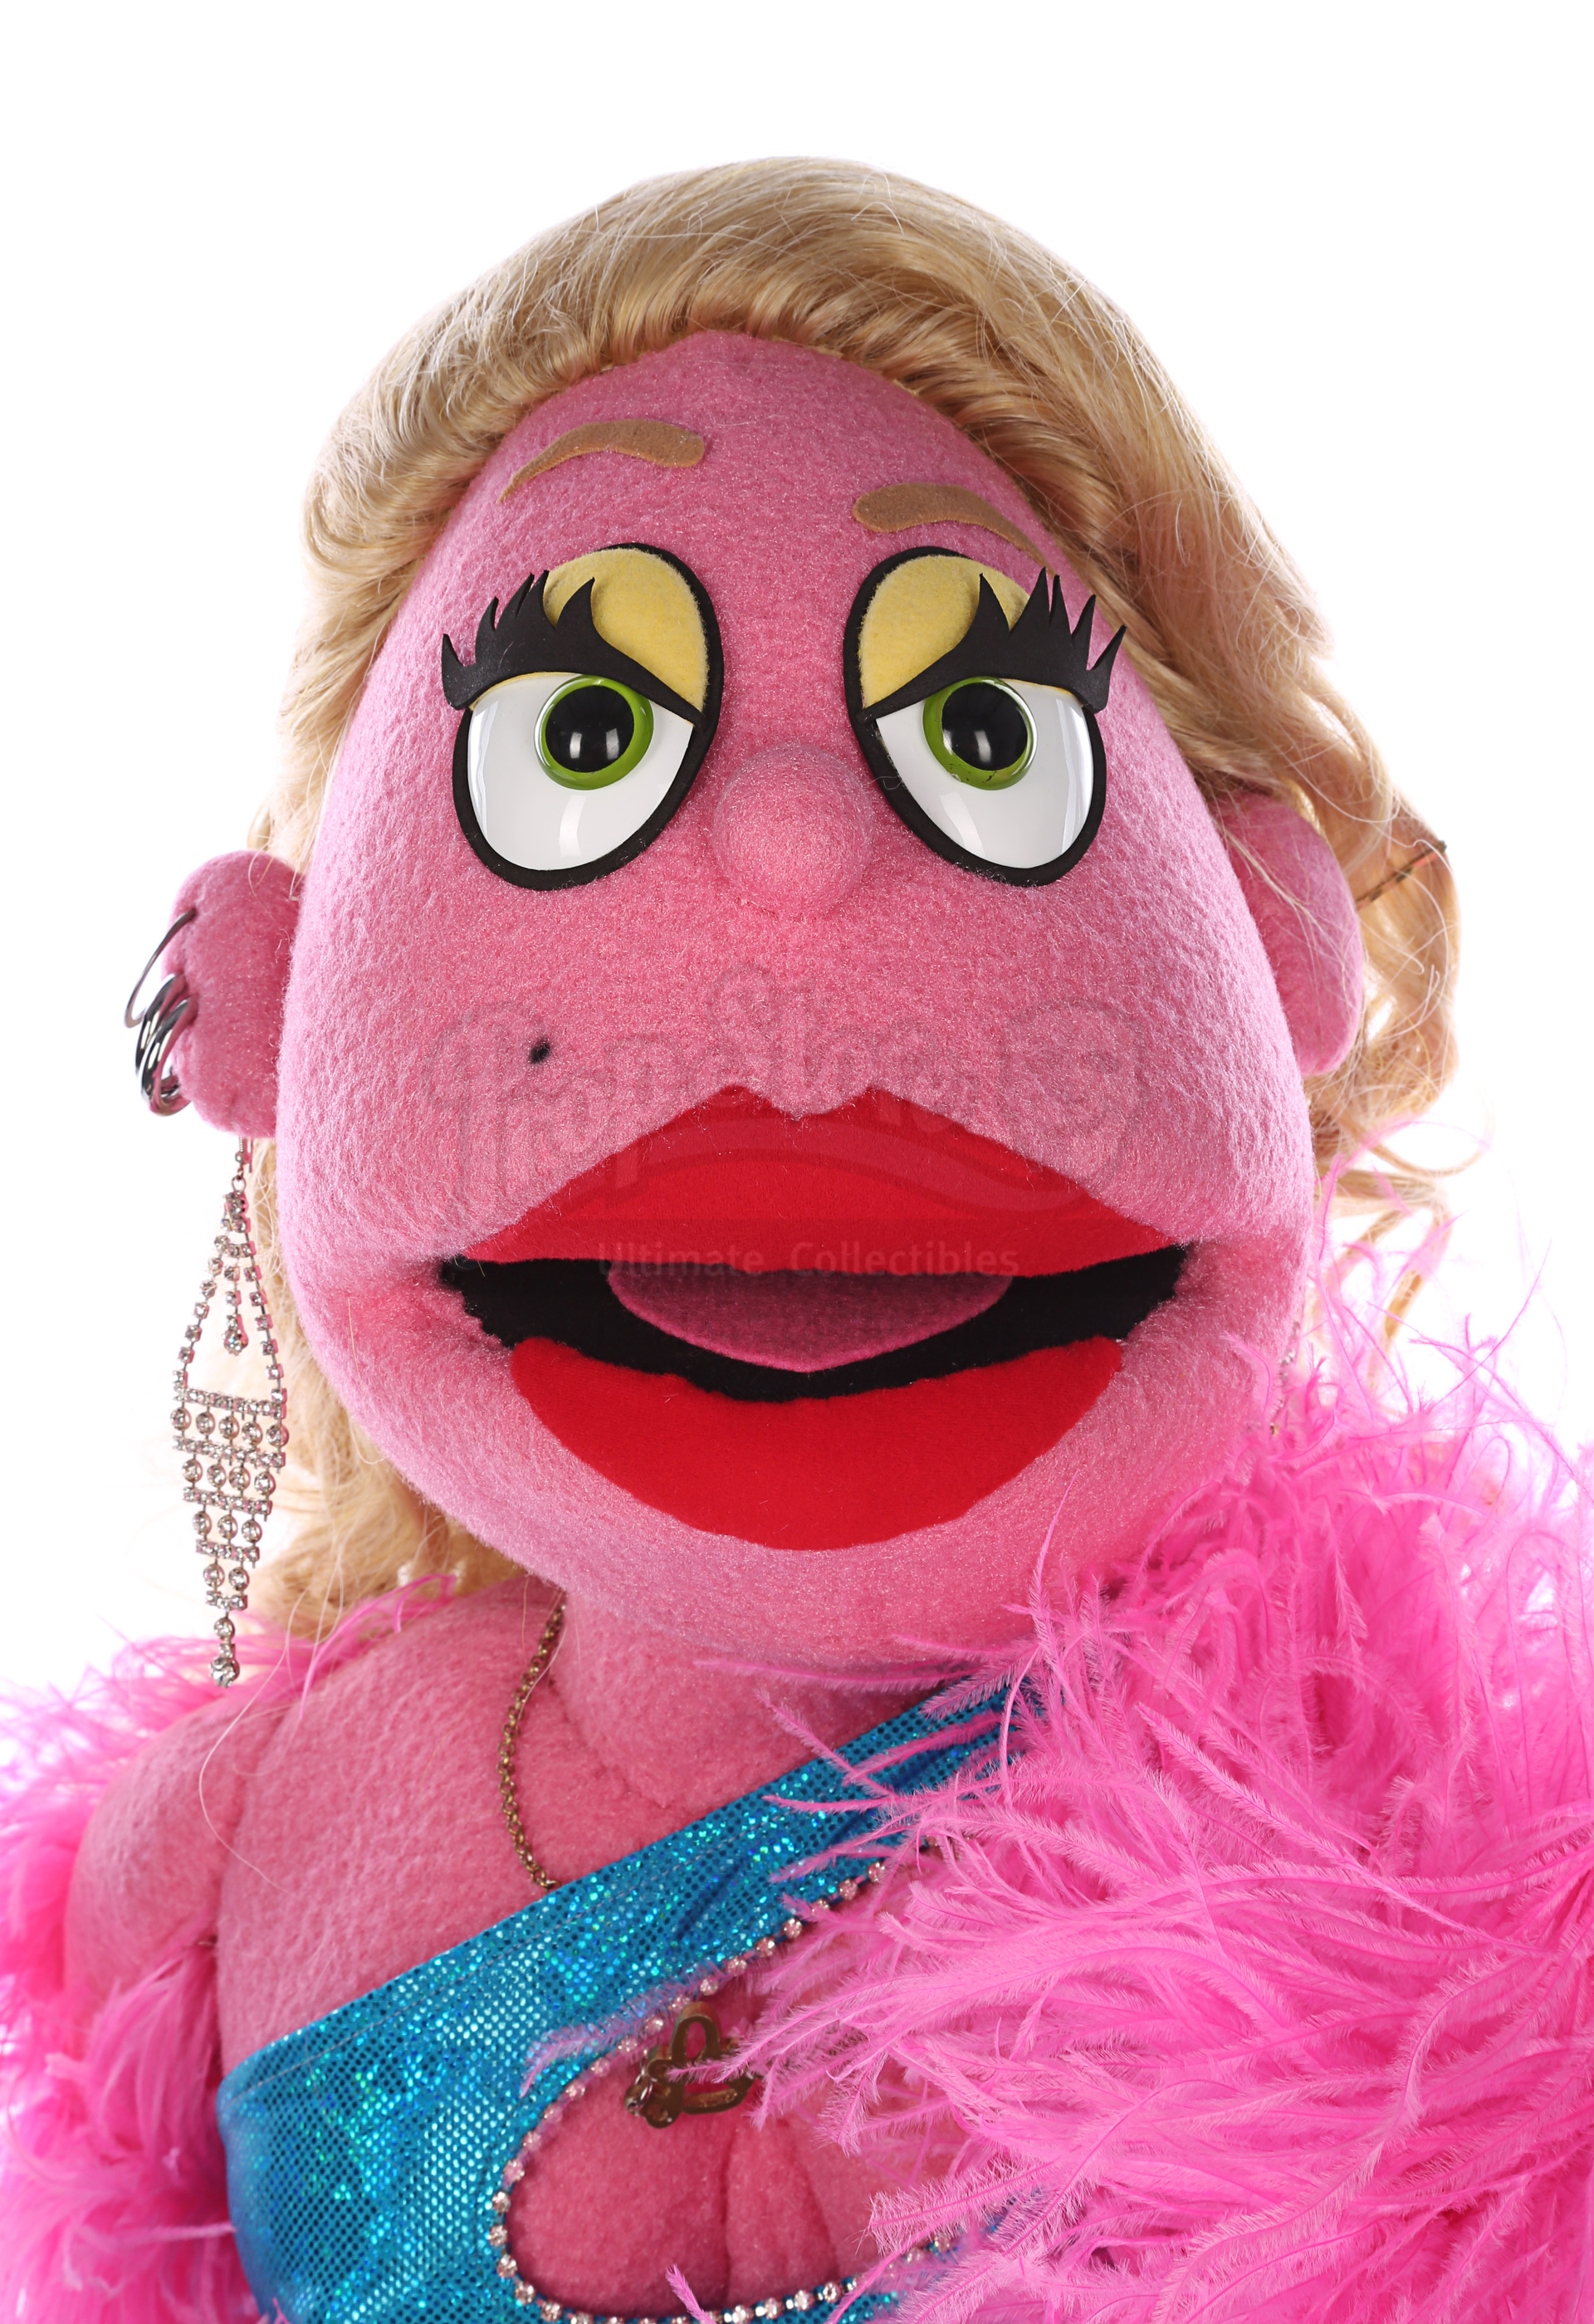 AVENUE Q (STAGE SHOW) - Lucy the Slut and Princeton Puppets - Image 7 of 9